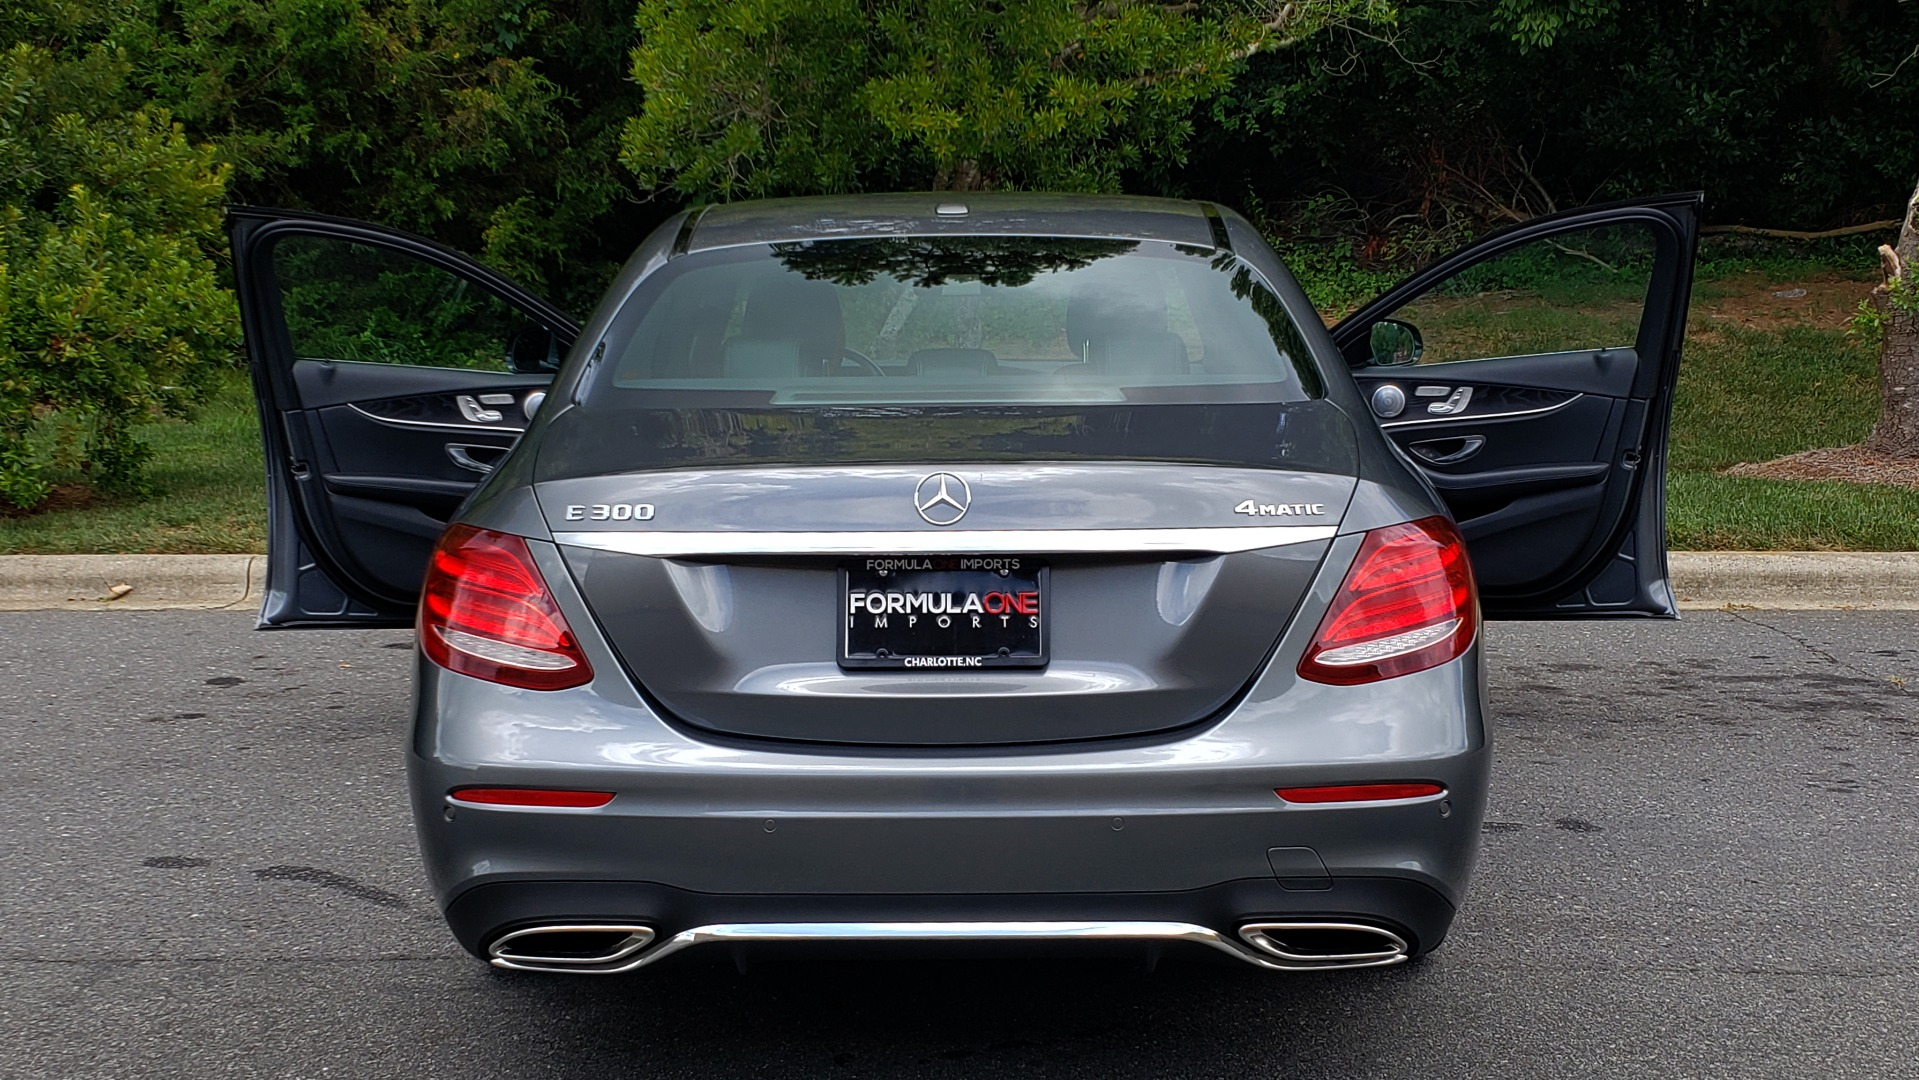 Used 2017 Mercedes-Benz E-Class E 300 4MATIC PREMIUM / SPORT / NAV / BURMESTER / HTD STS / REARVIEW for sale $30,495 at Formula Imports in Charlotte NC 28227 24